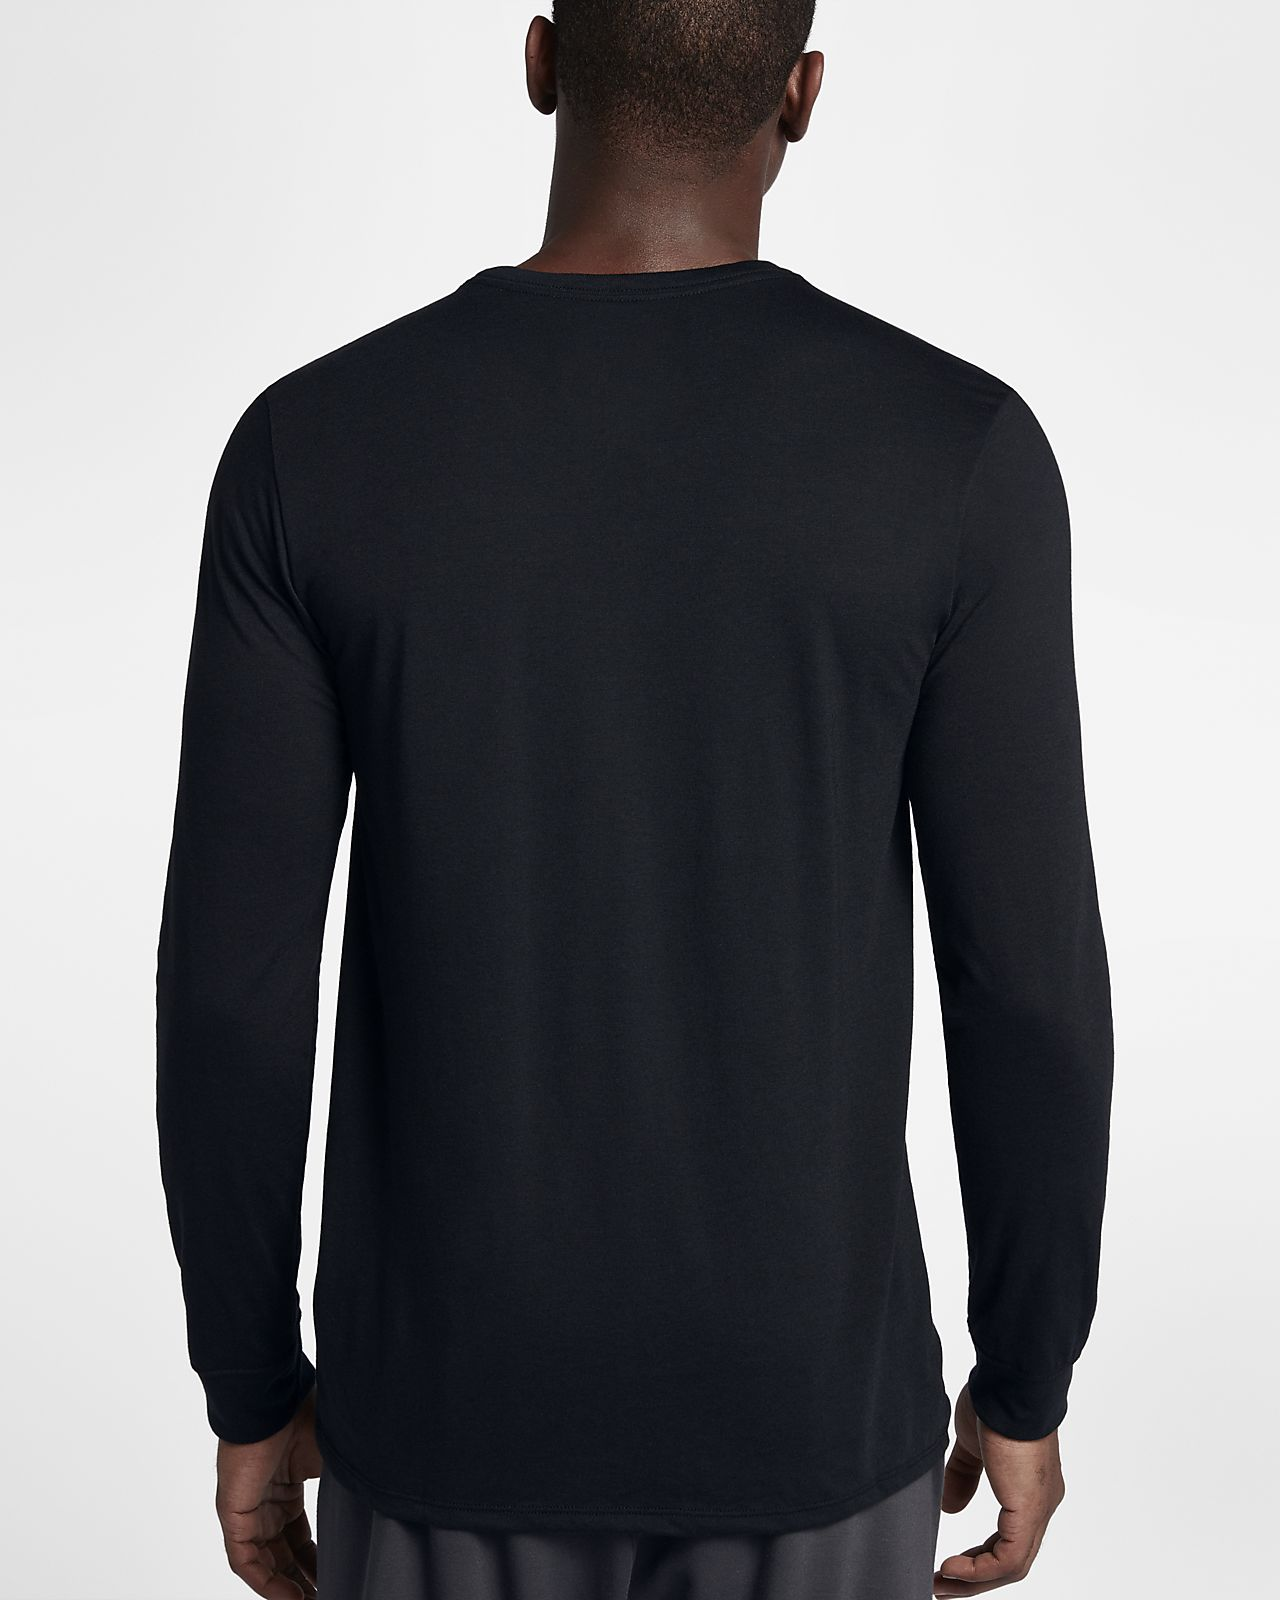 Nike Dri-FIT Men's Long Sleeve Basketball T-Shirt. Nike.com